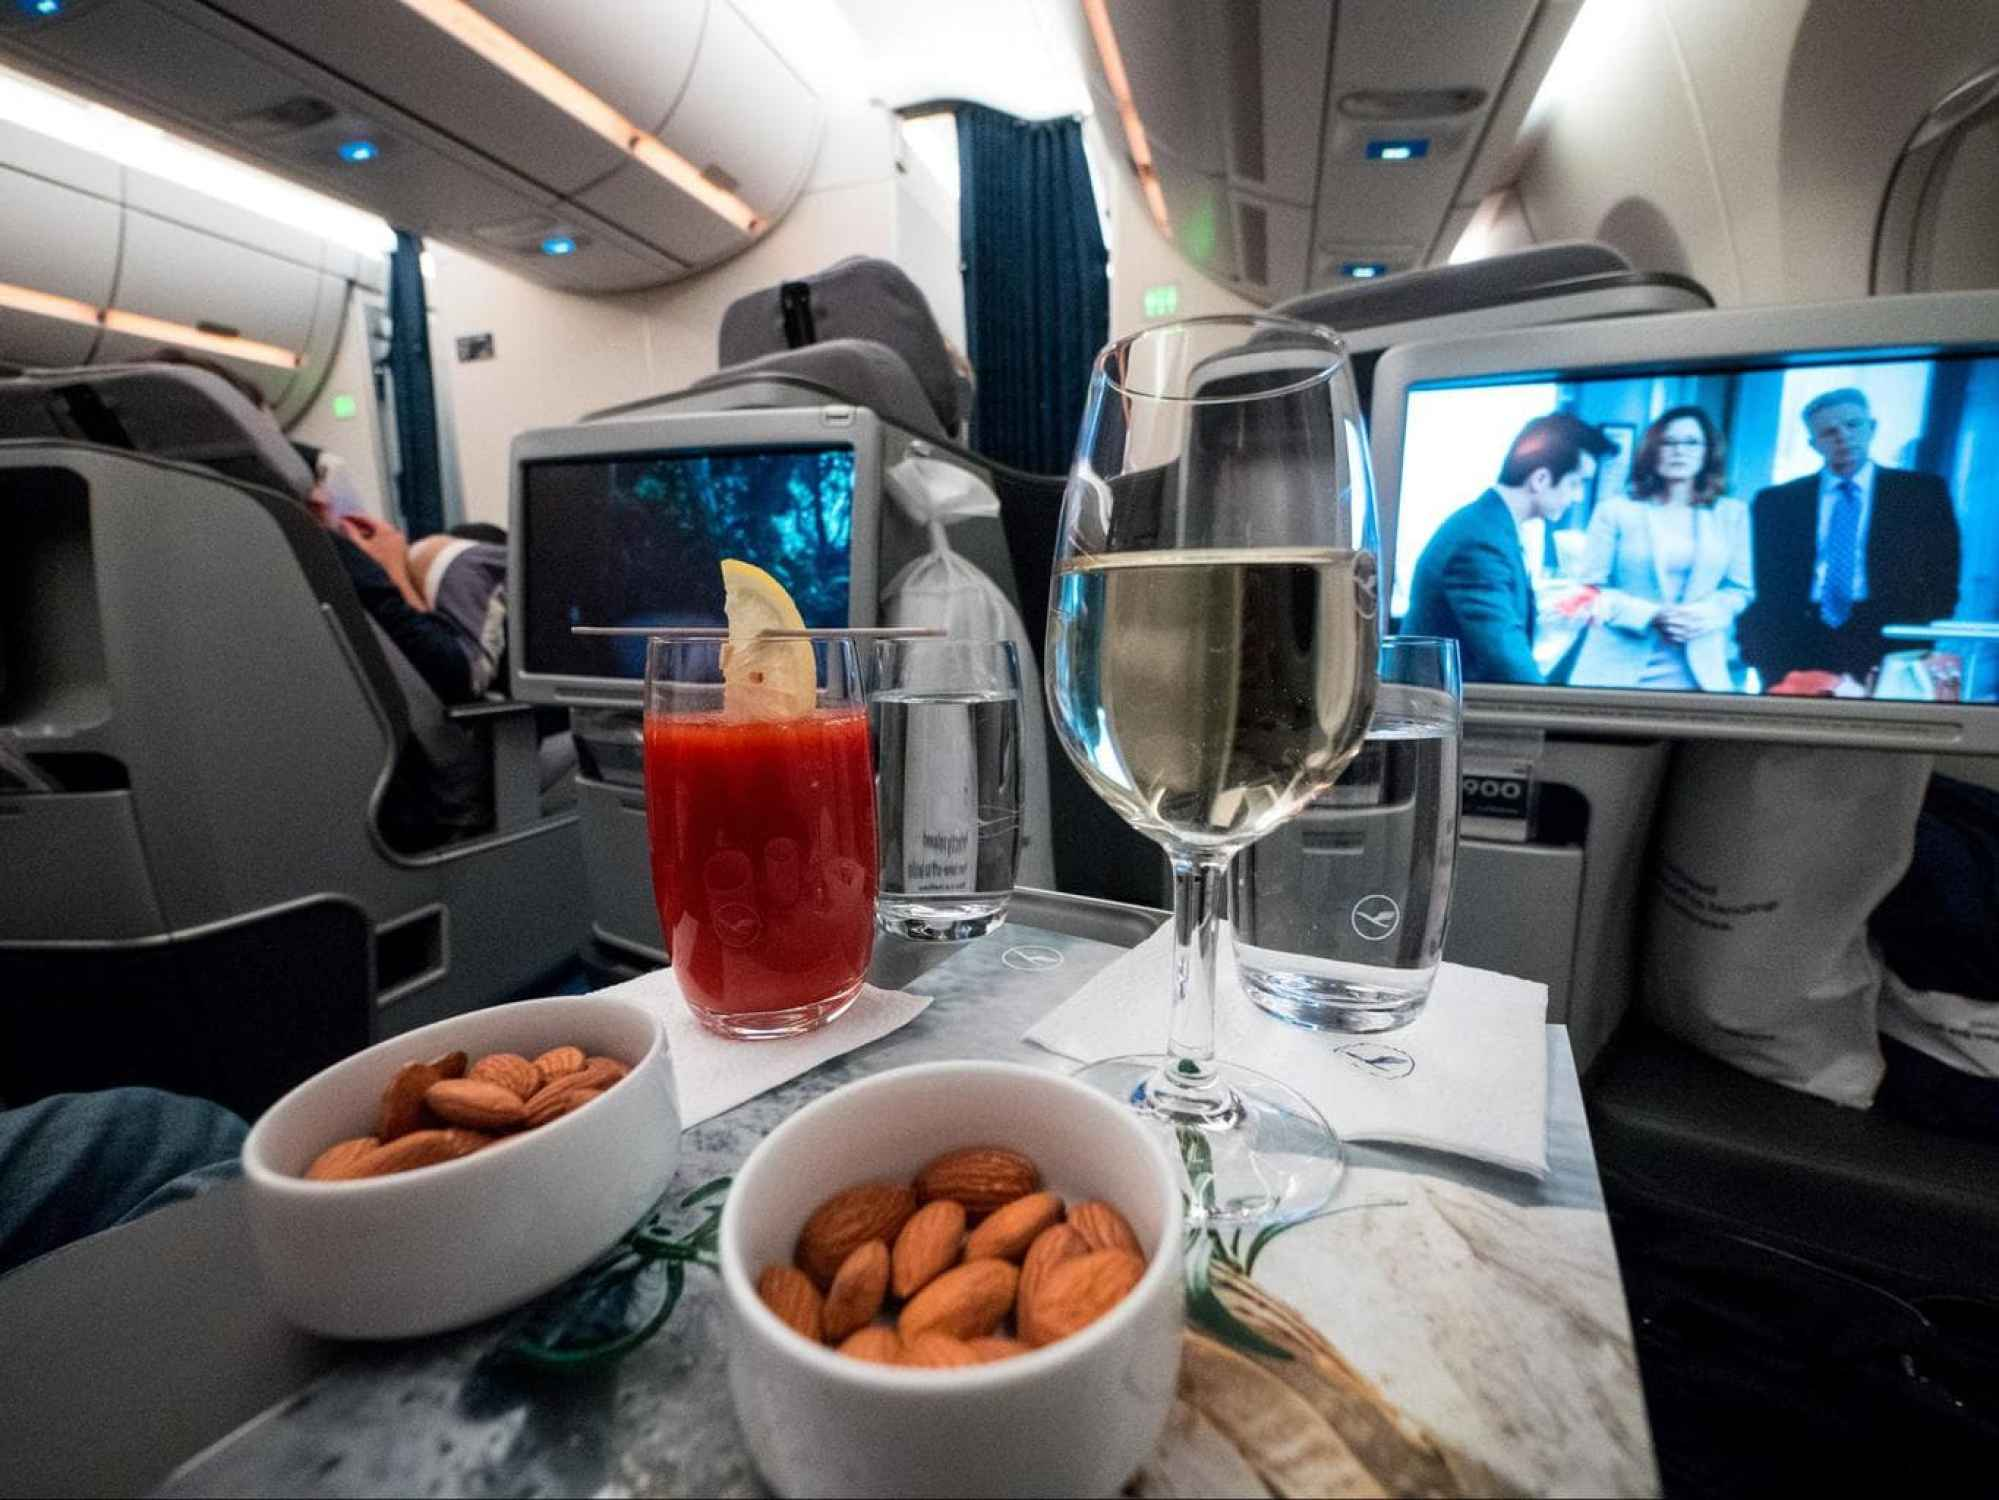 Lufthansa Business Class drinks and snacks after take-off